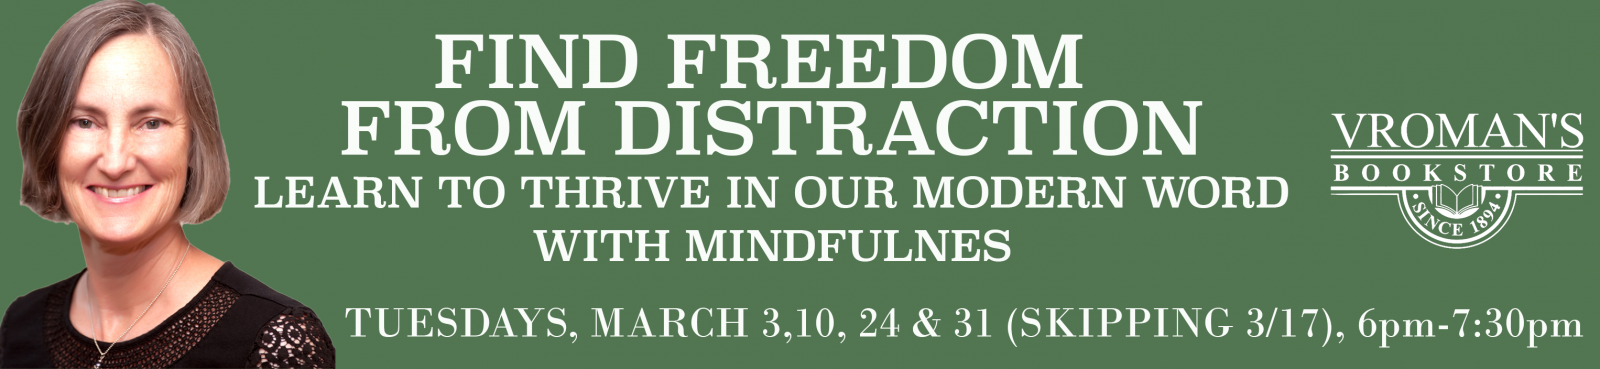 Find Freedom from Distraction with Mindfulness Workshop